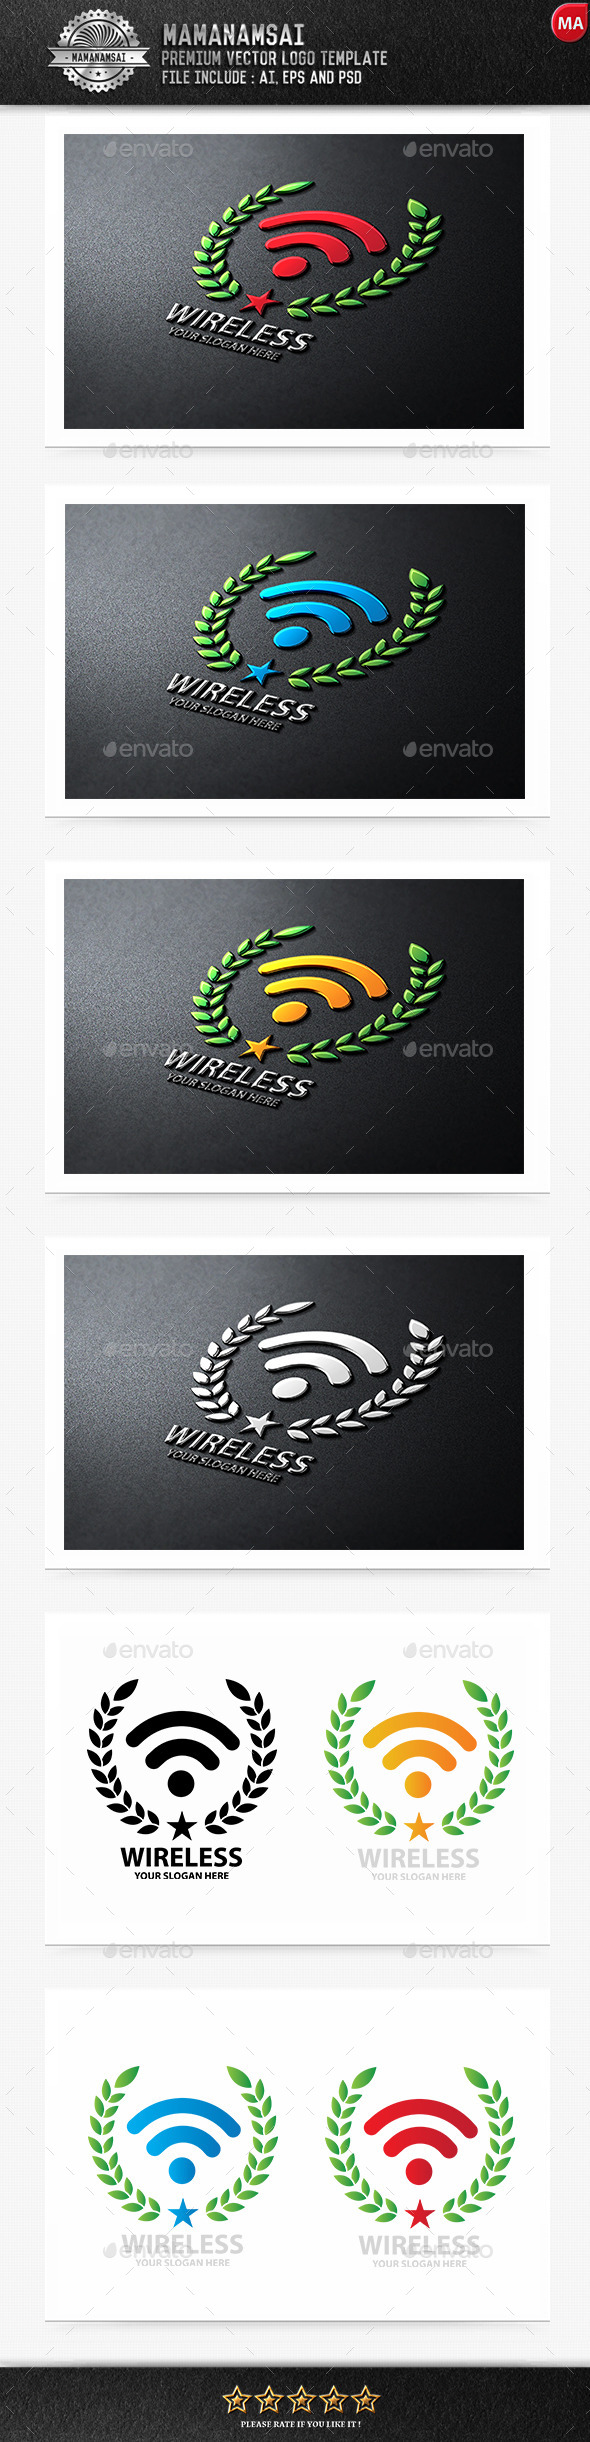 Wireless Logo - Logo Templates